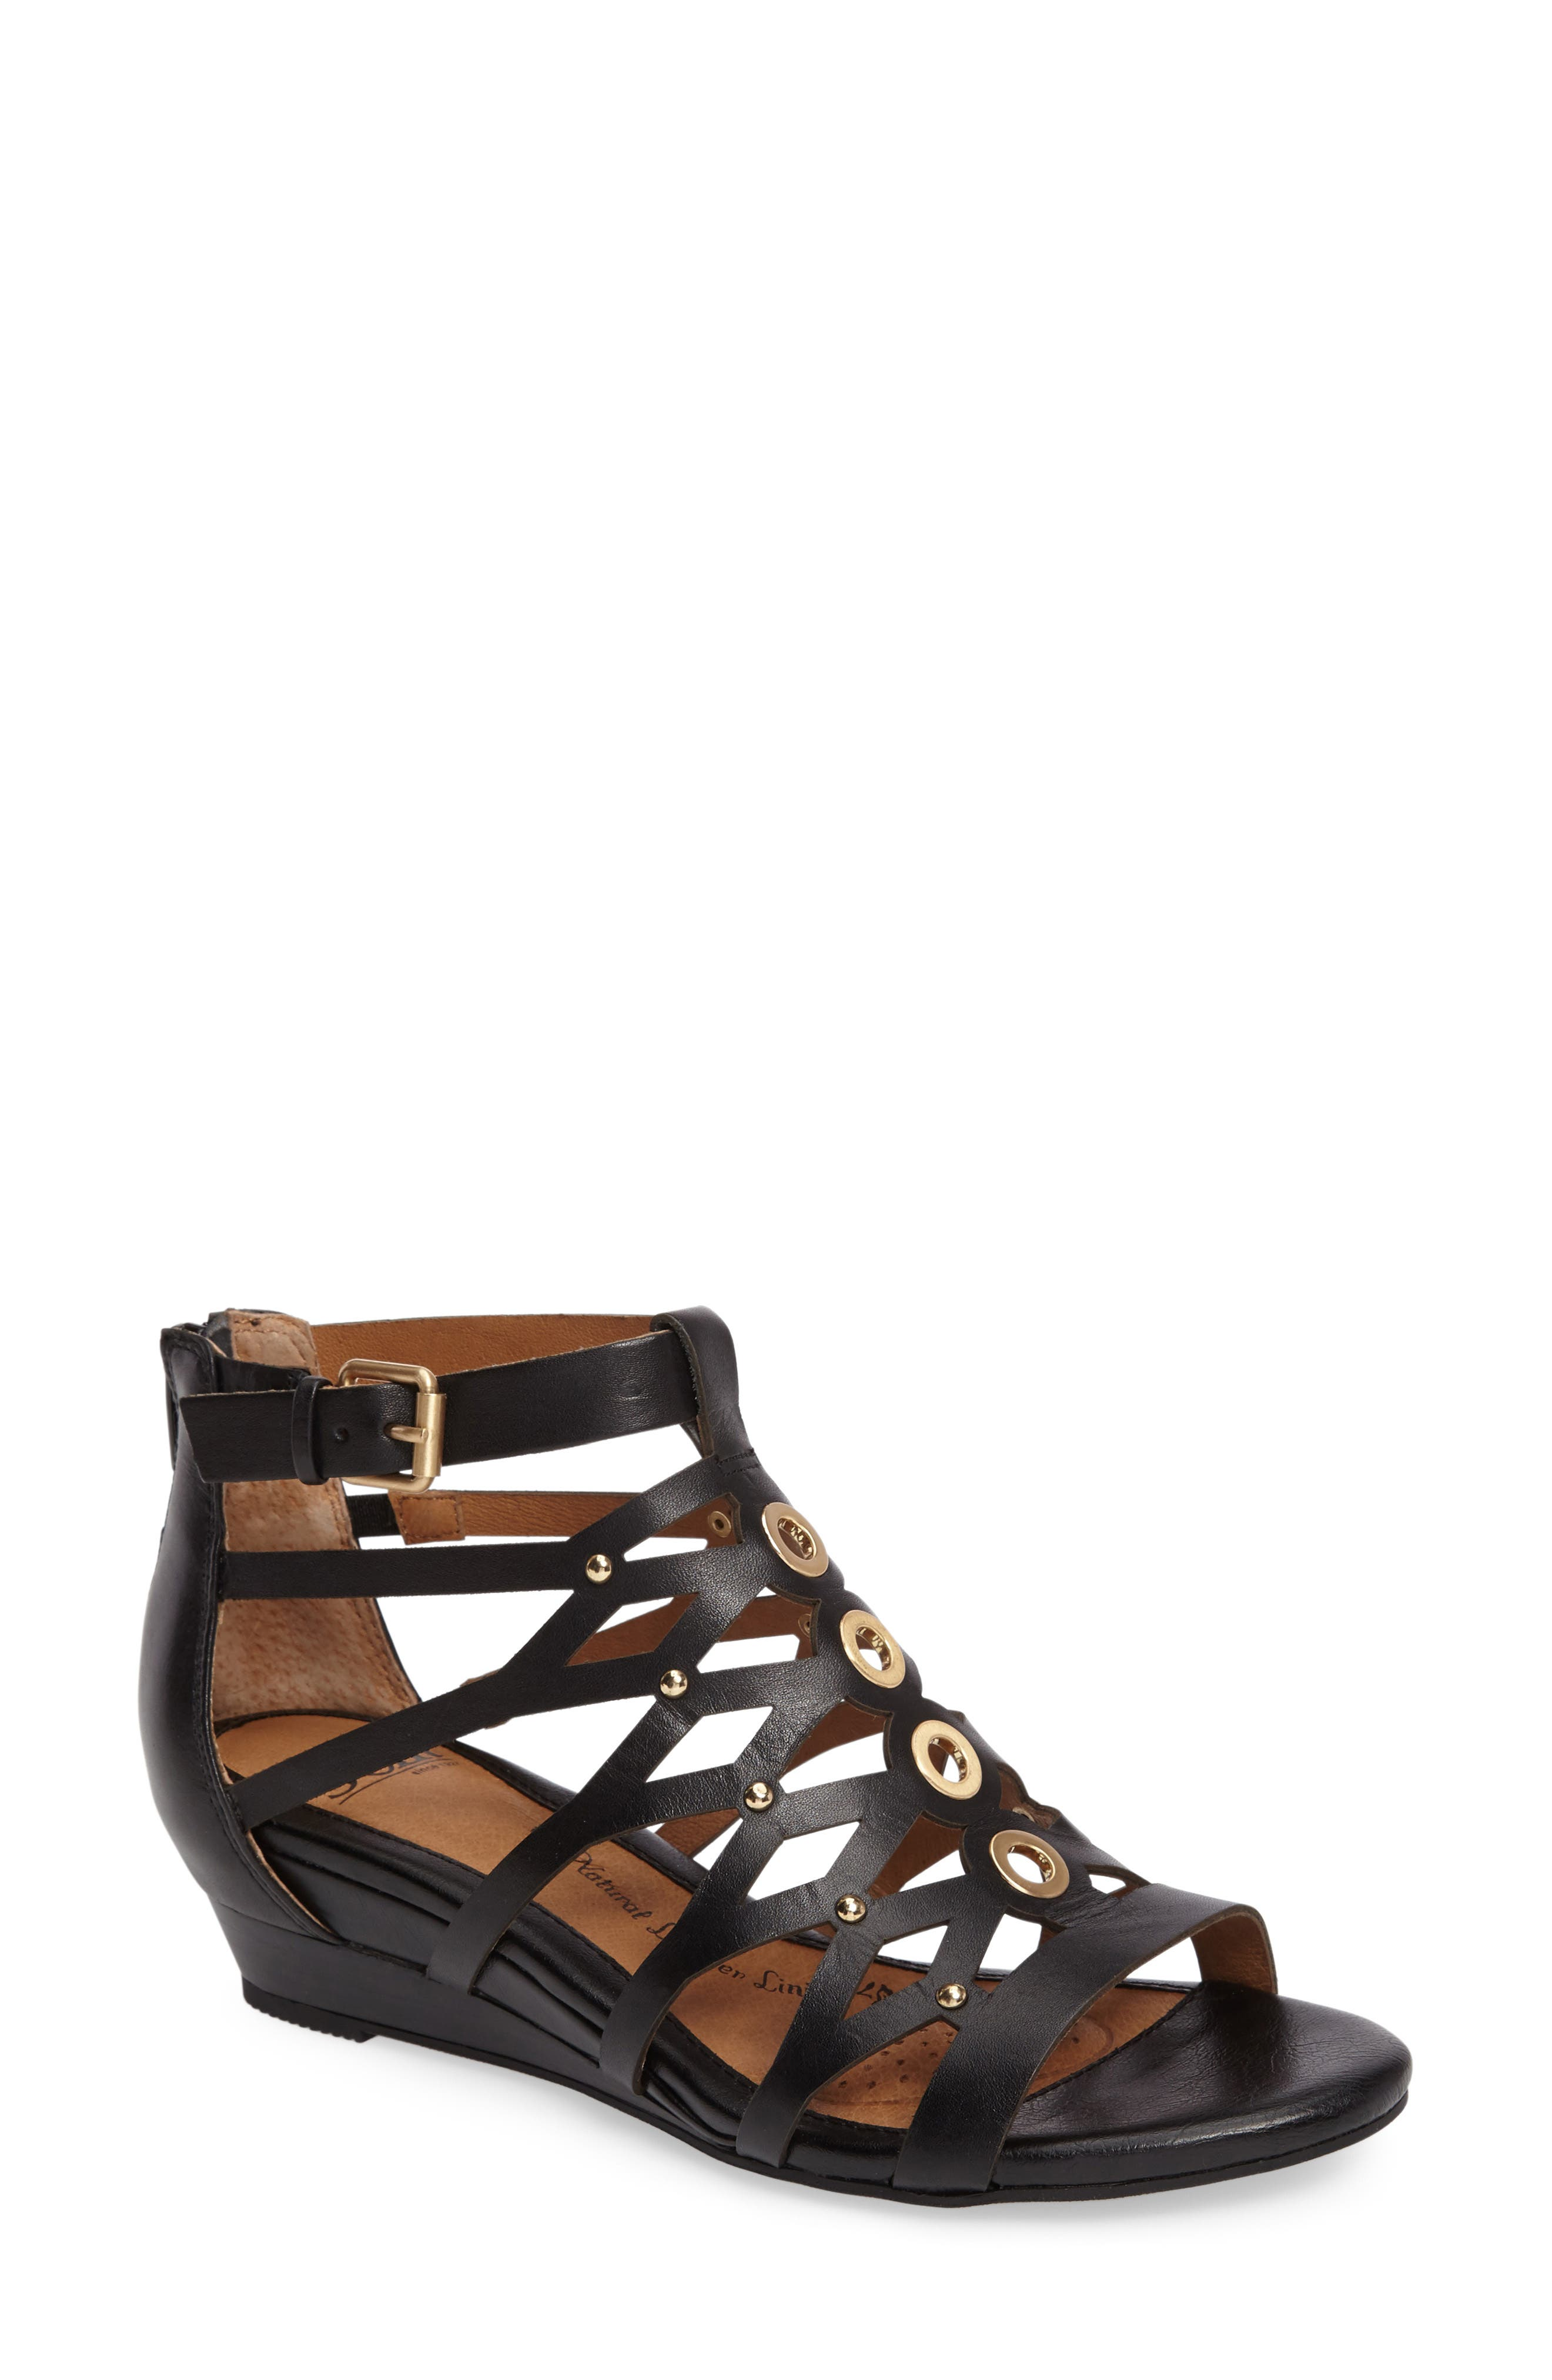 Rosalyn Wedge Sandal,                             Main thumbnail 1, color,                             001